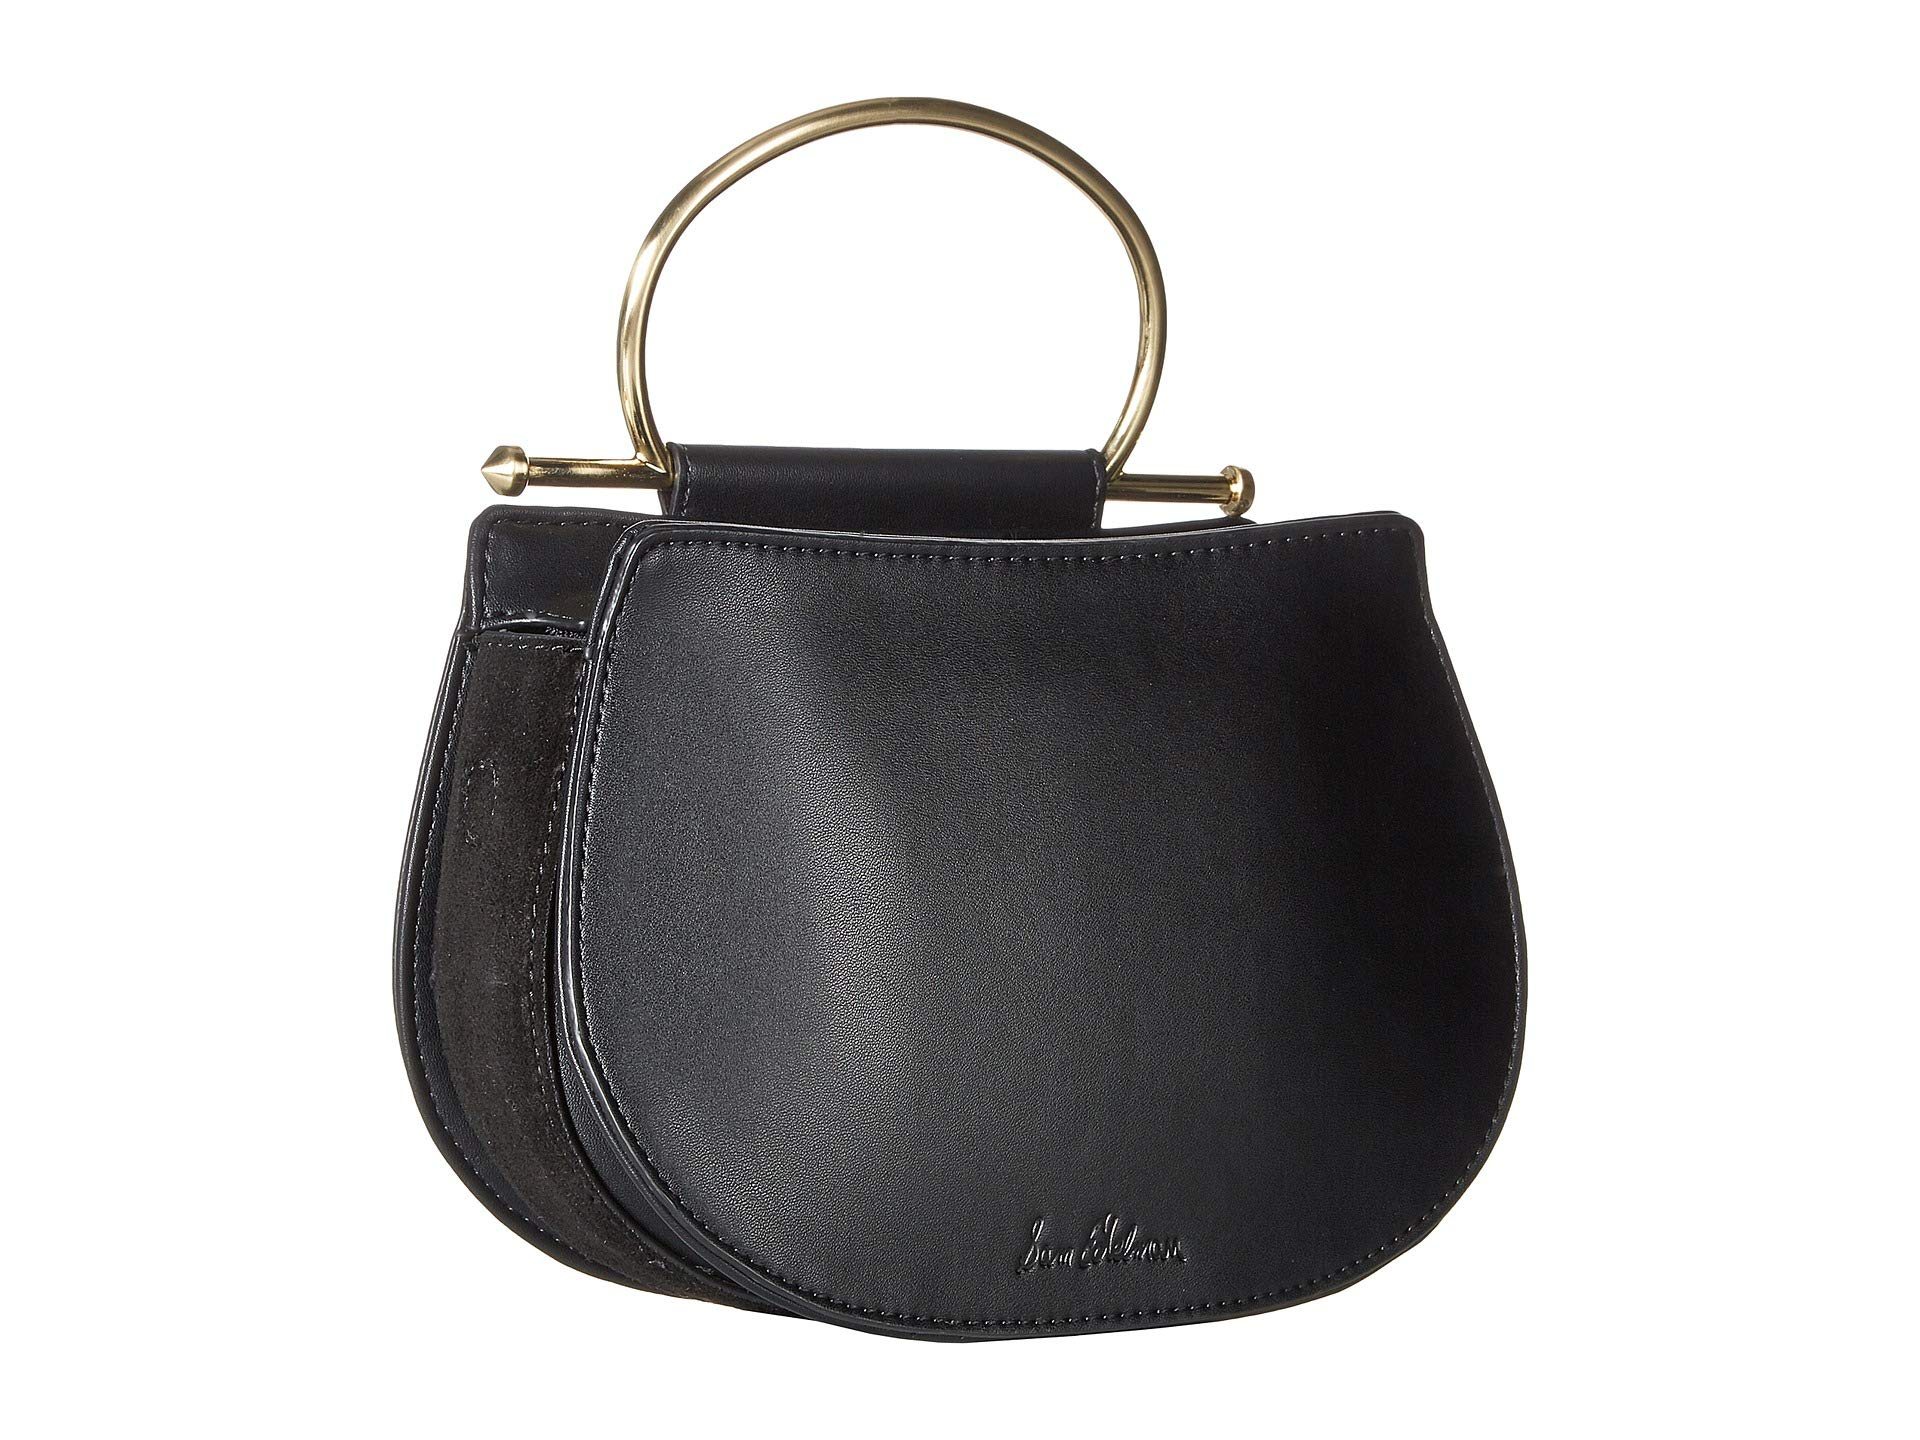 Bag Chesham Black Edelman Shoulder Sam 8qXwq